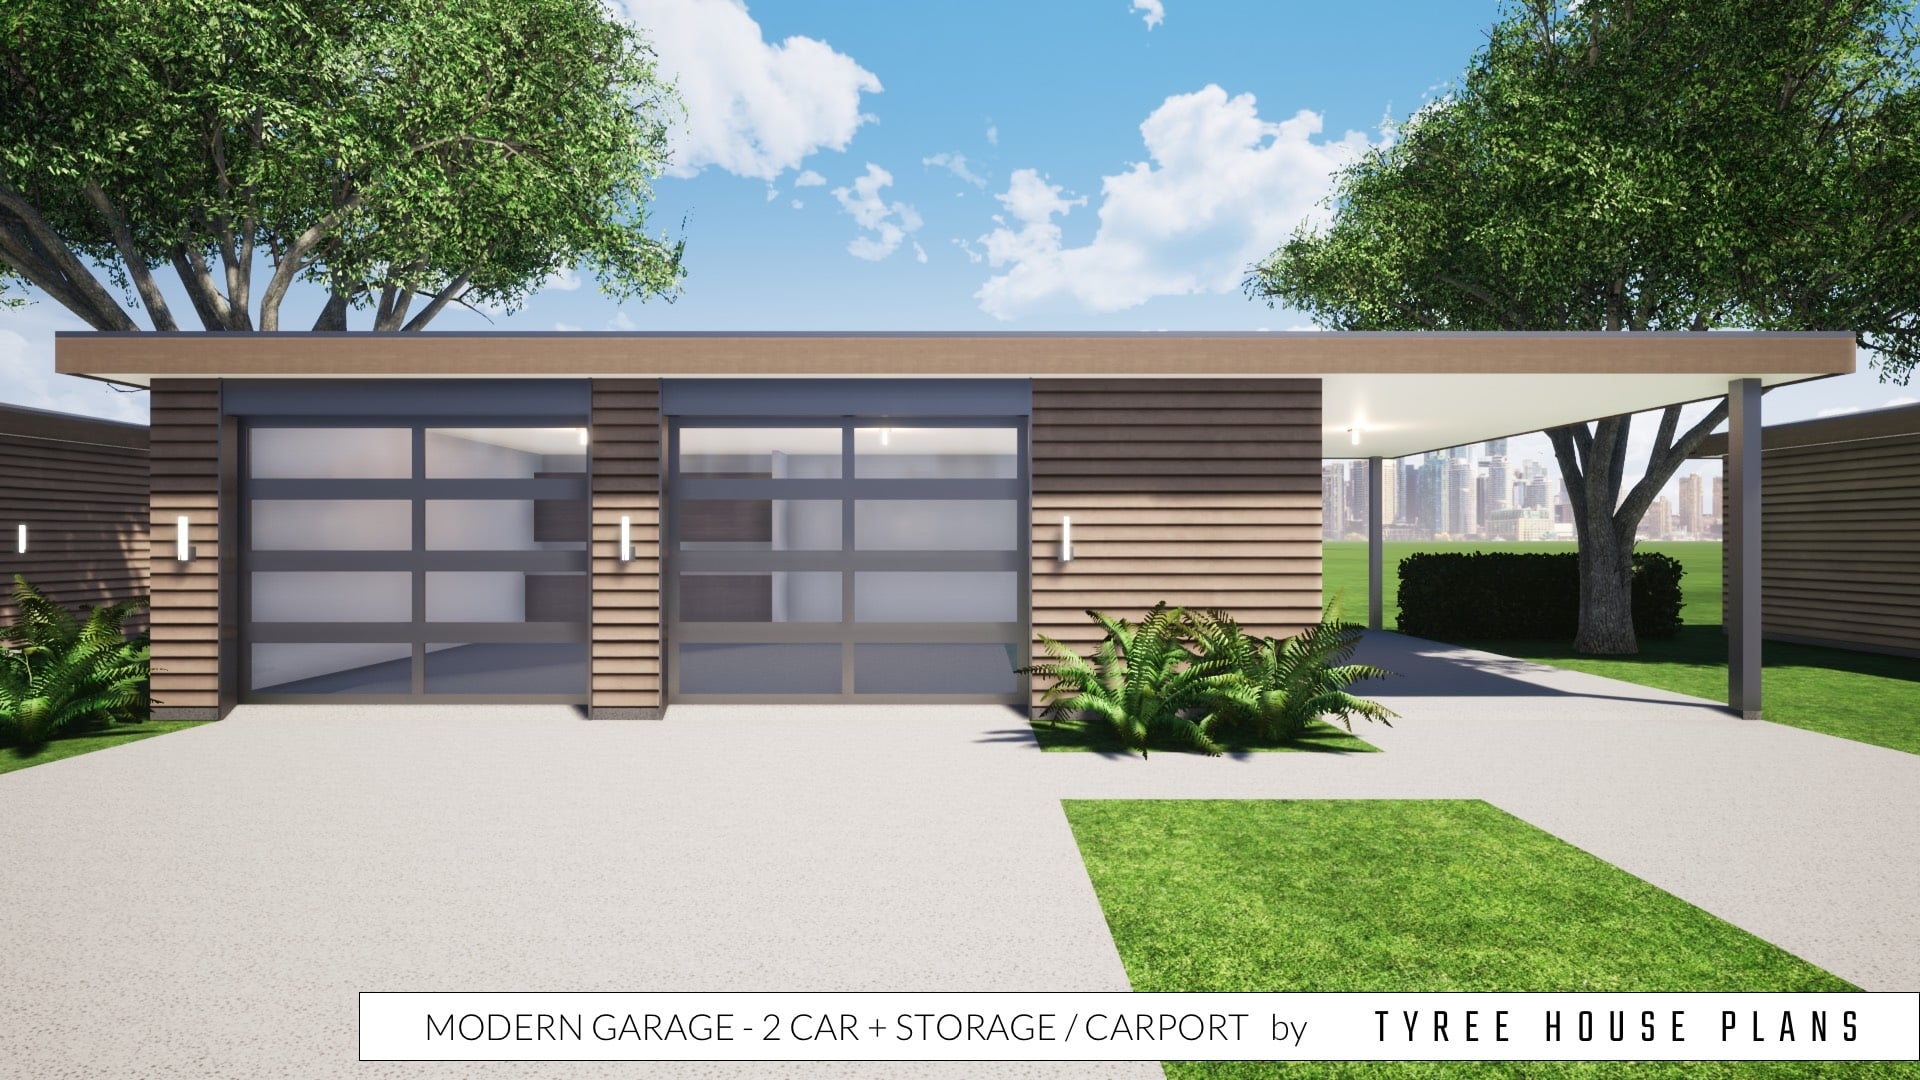 Modern Garage Plan 2 Car Plus Storage And Carport By Tyree House Plans